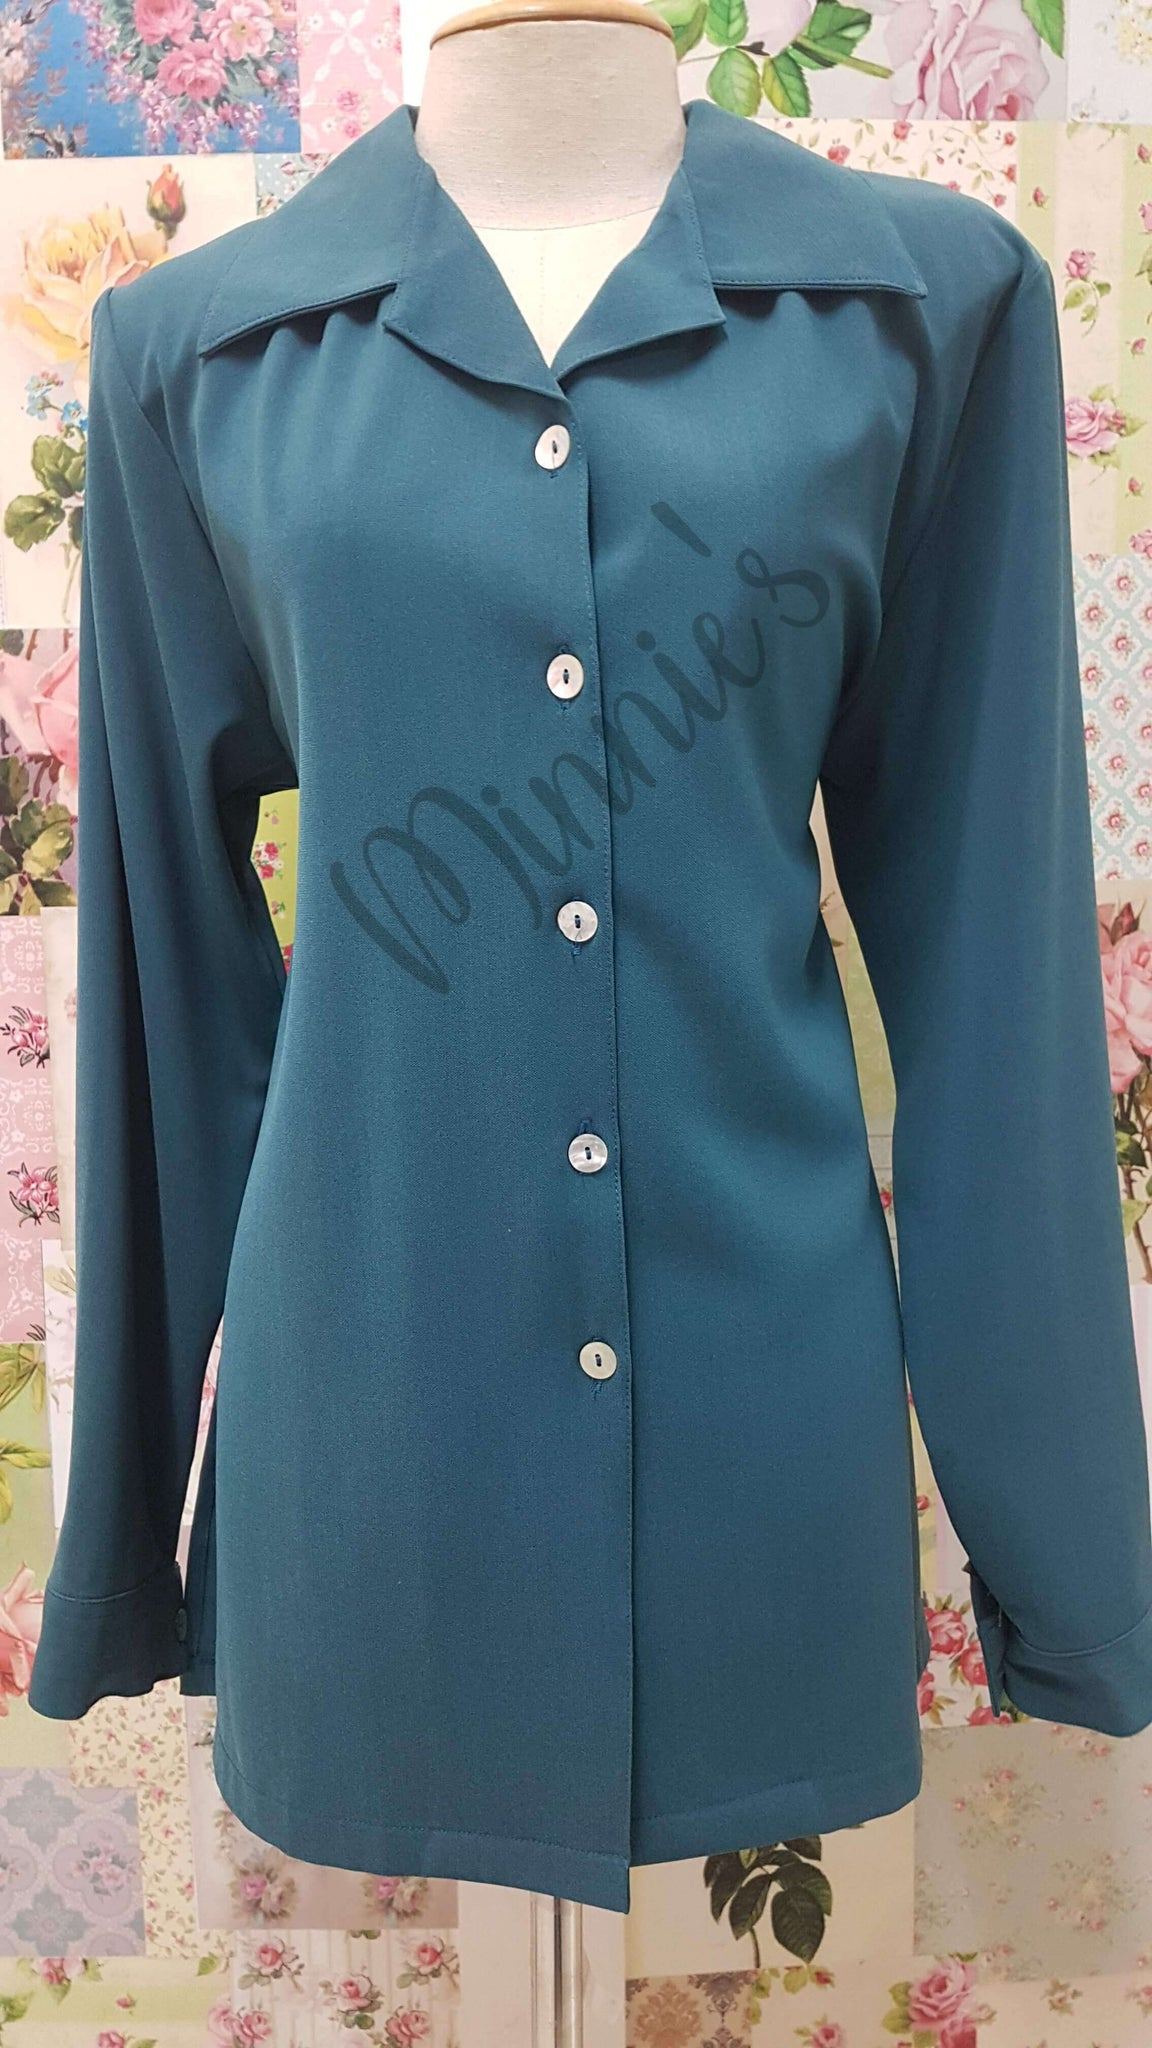 Teal Blouse BS0139